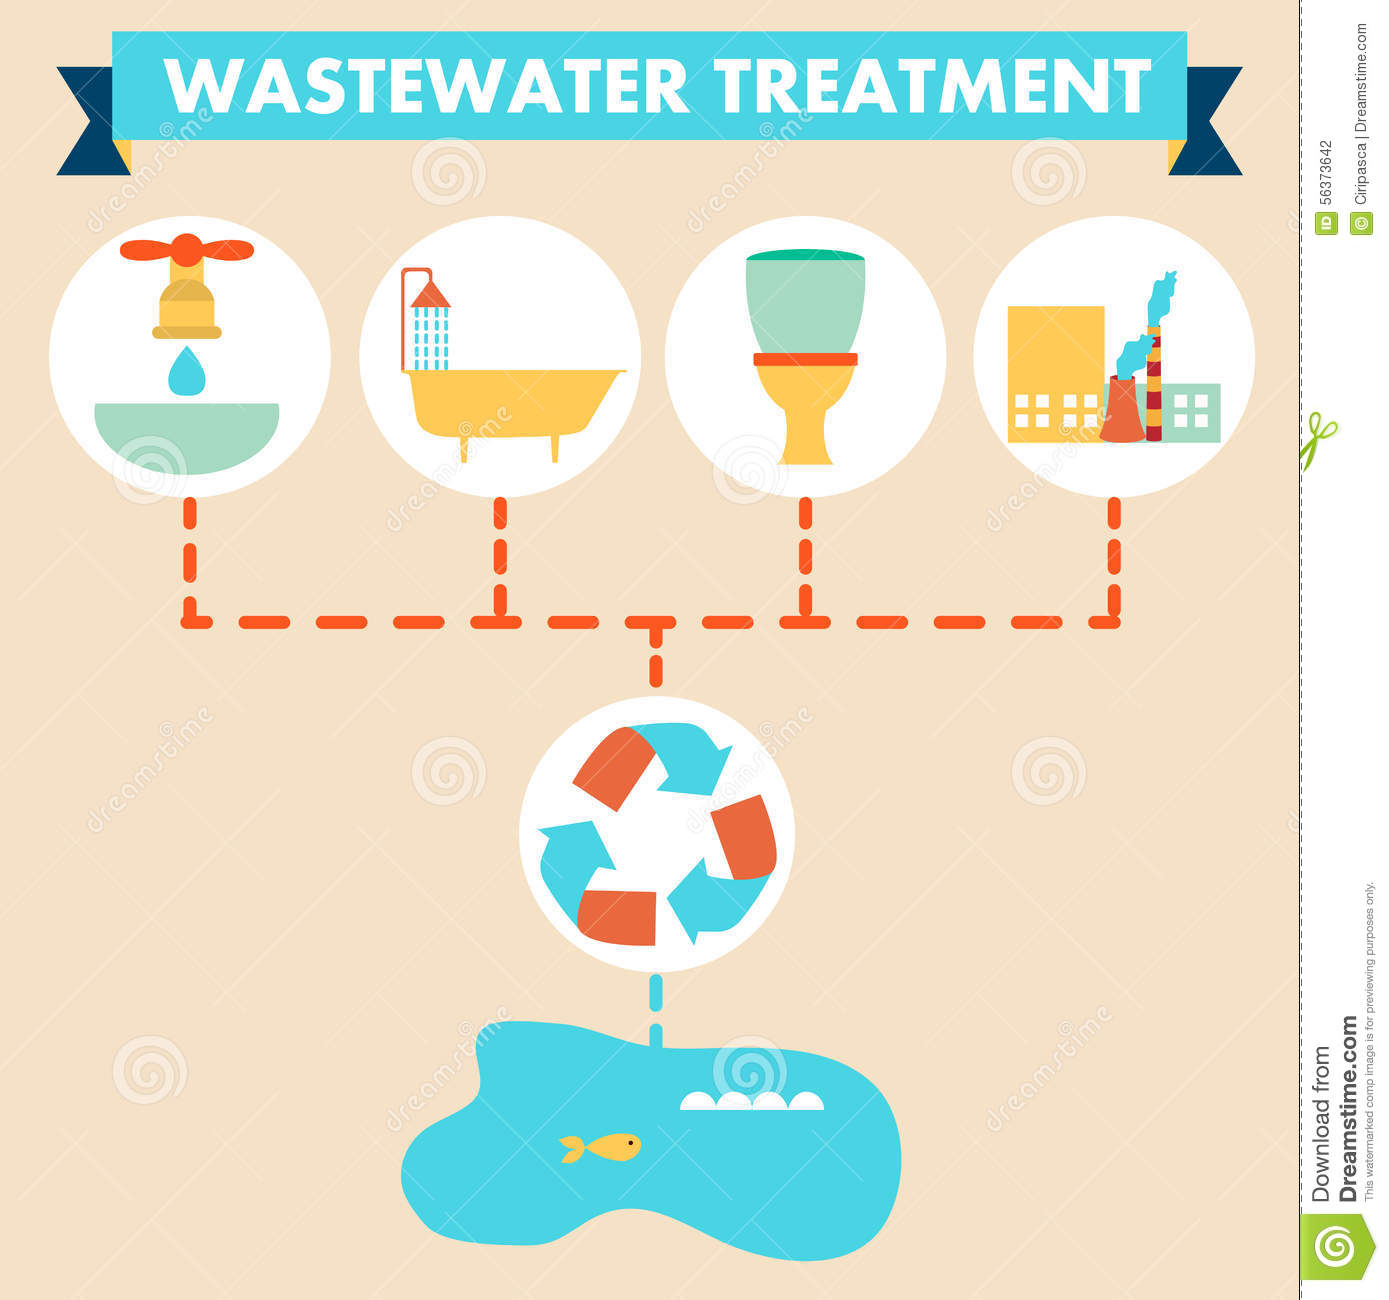 Wastewater Stock Illustrations.